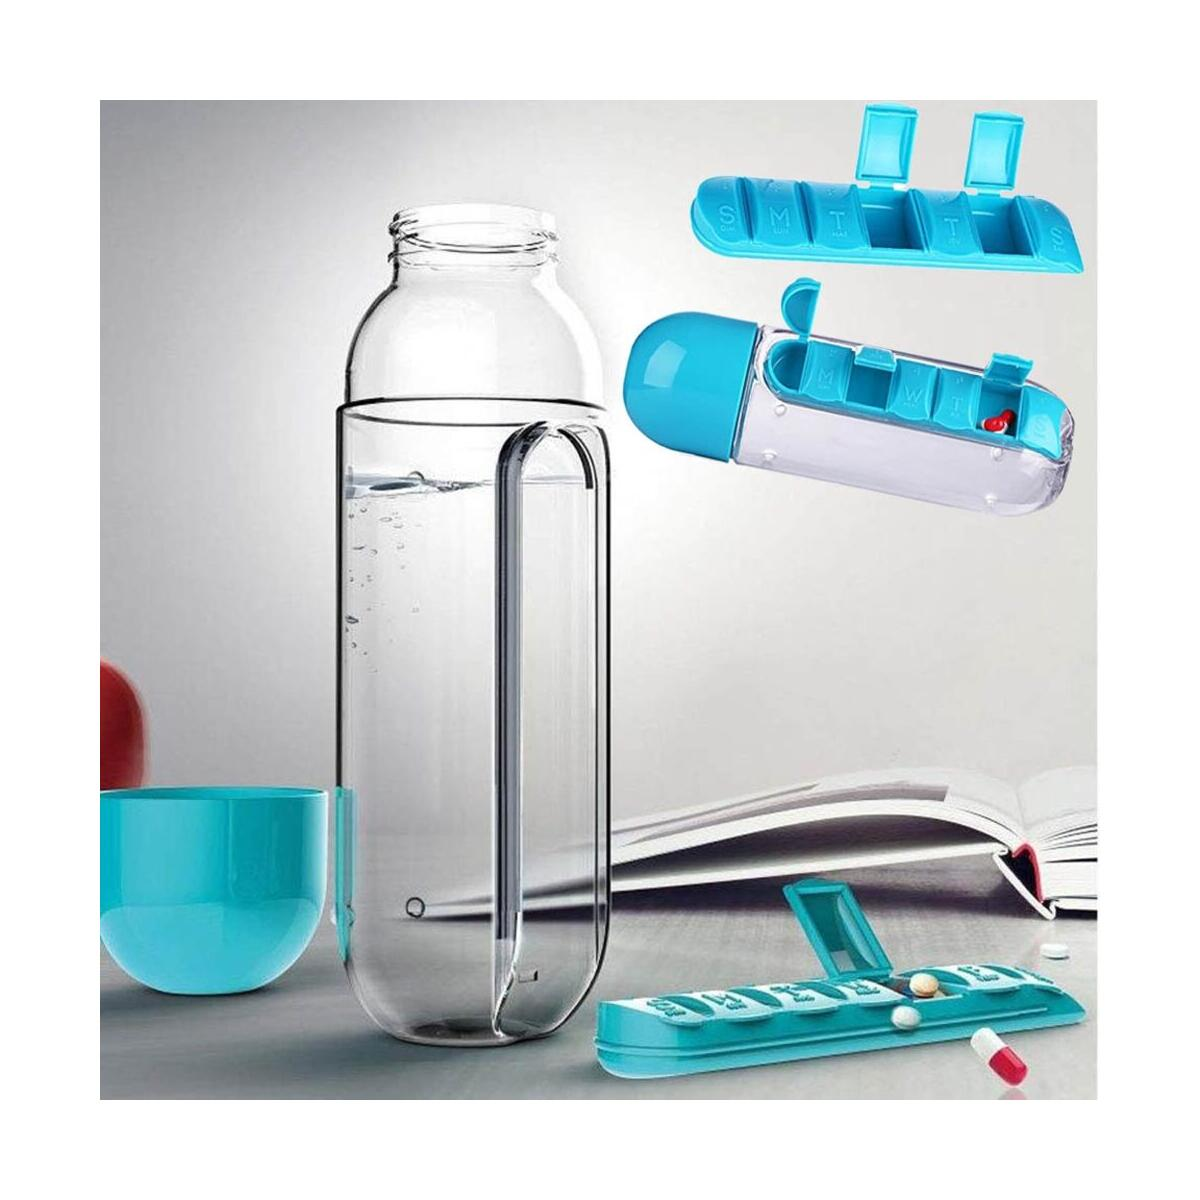 Combine Daily Pill Box Organizer with Water Bottle